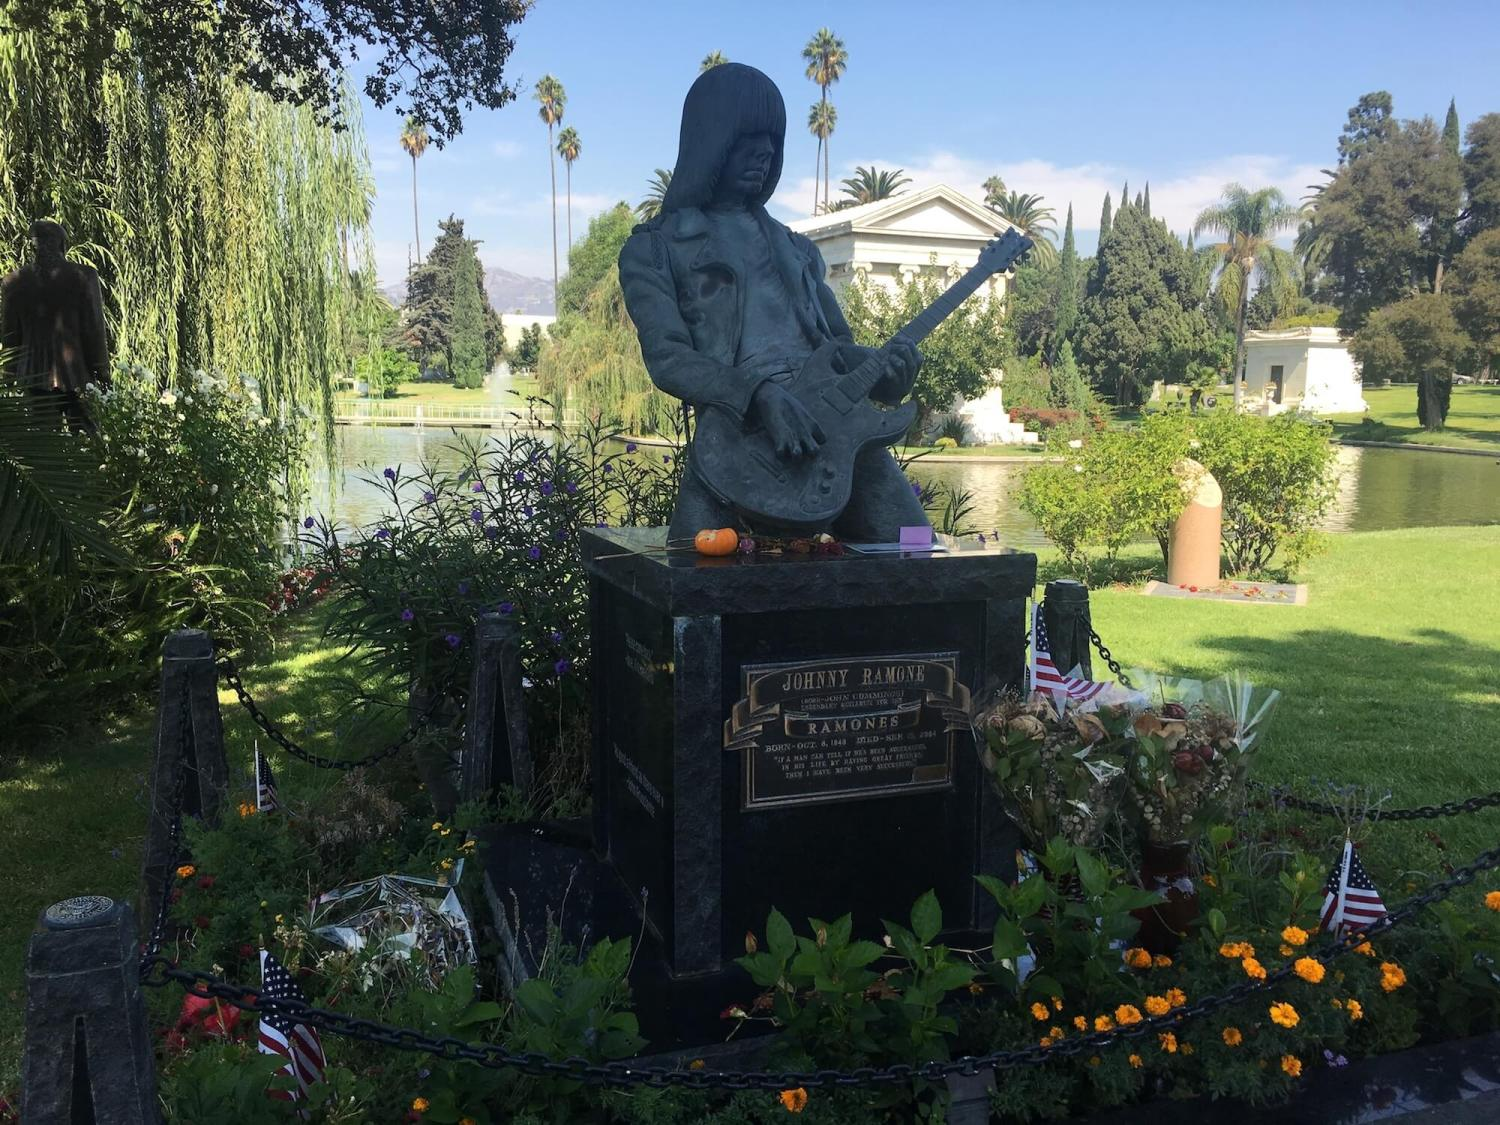 Johnny Ramone memorial, hollywood forever cemetery